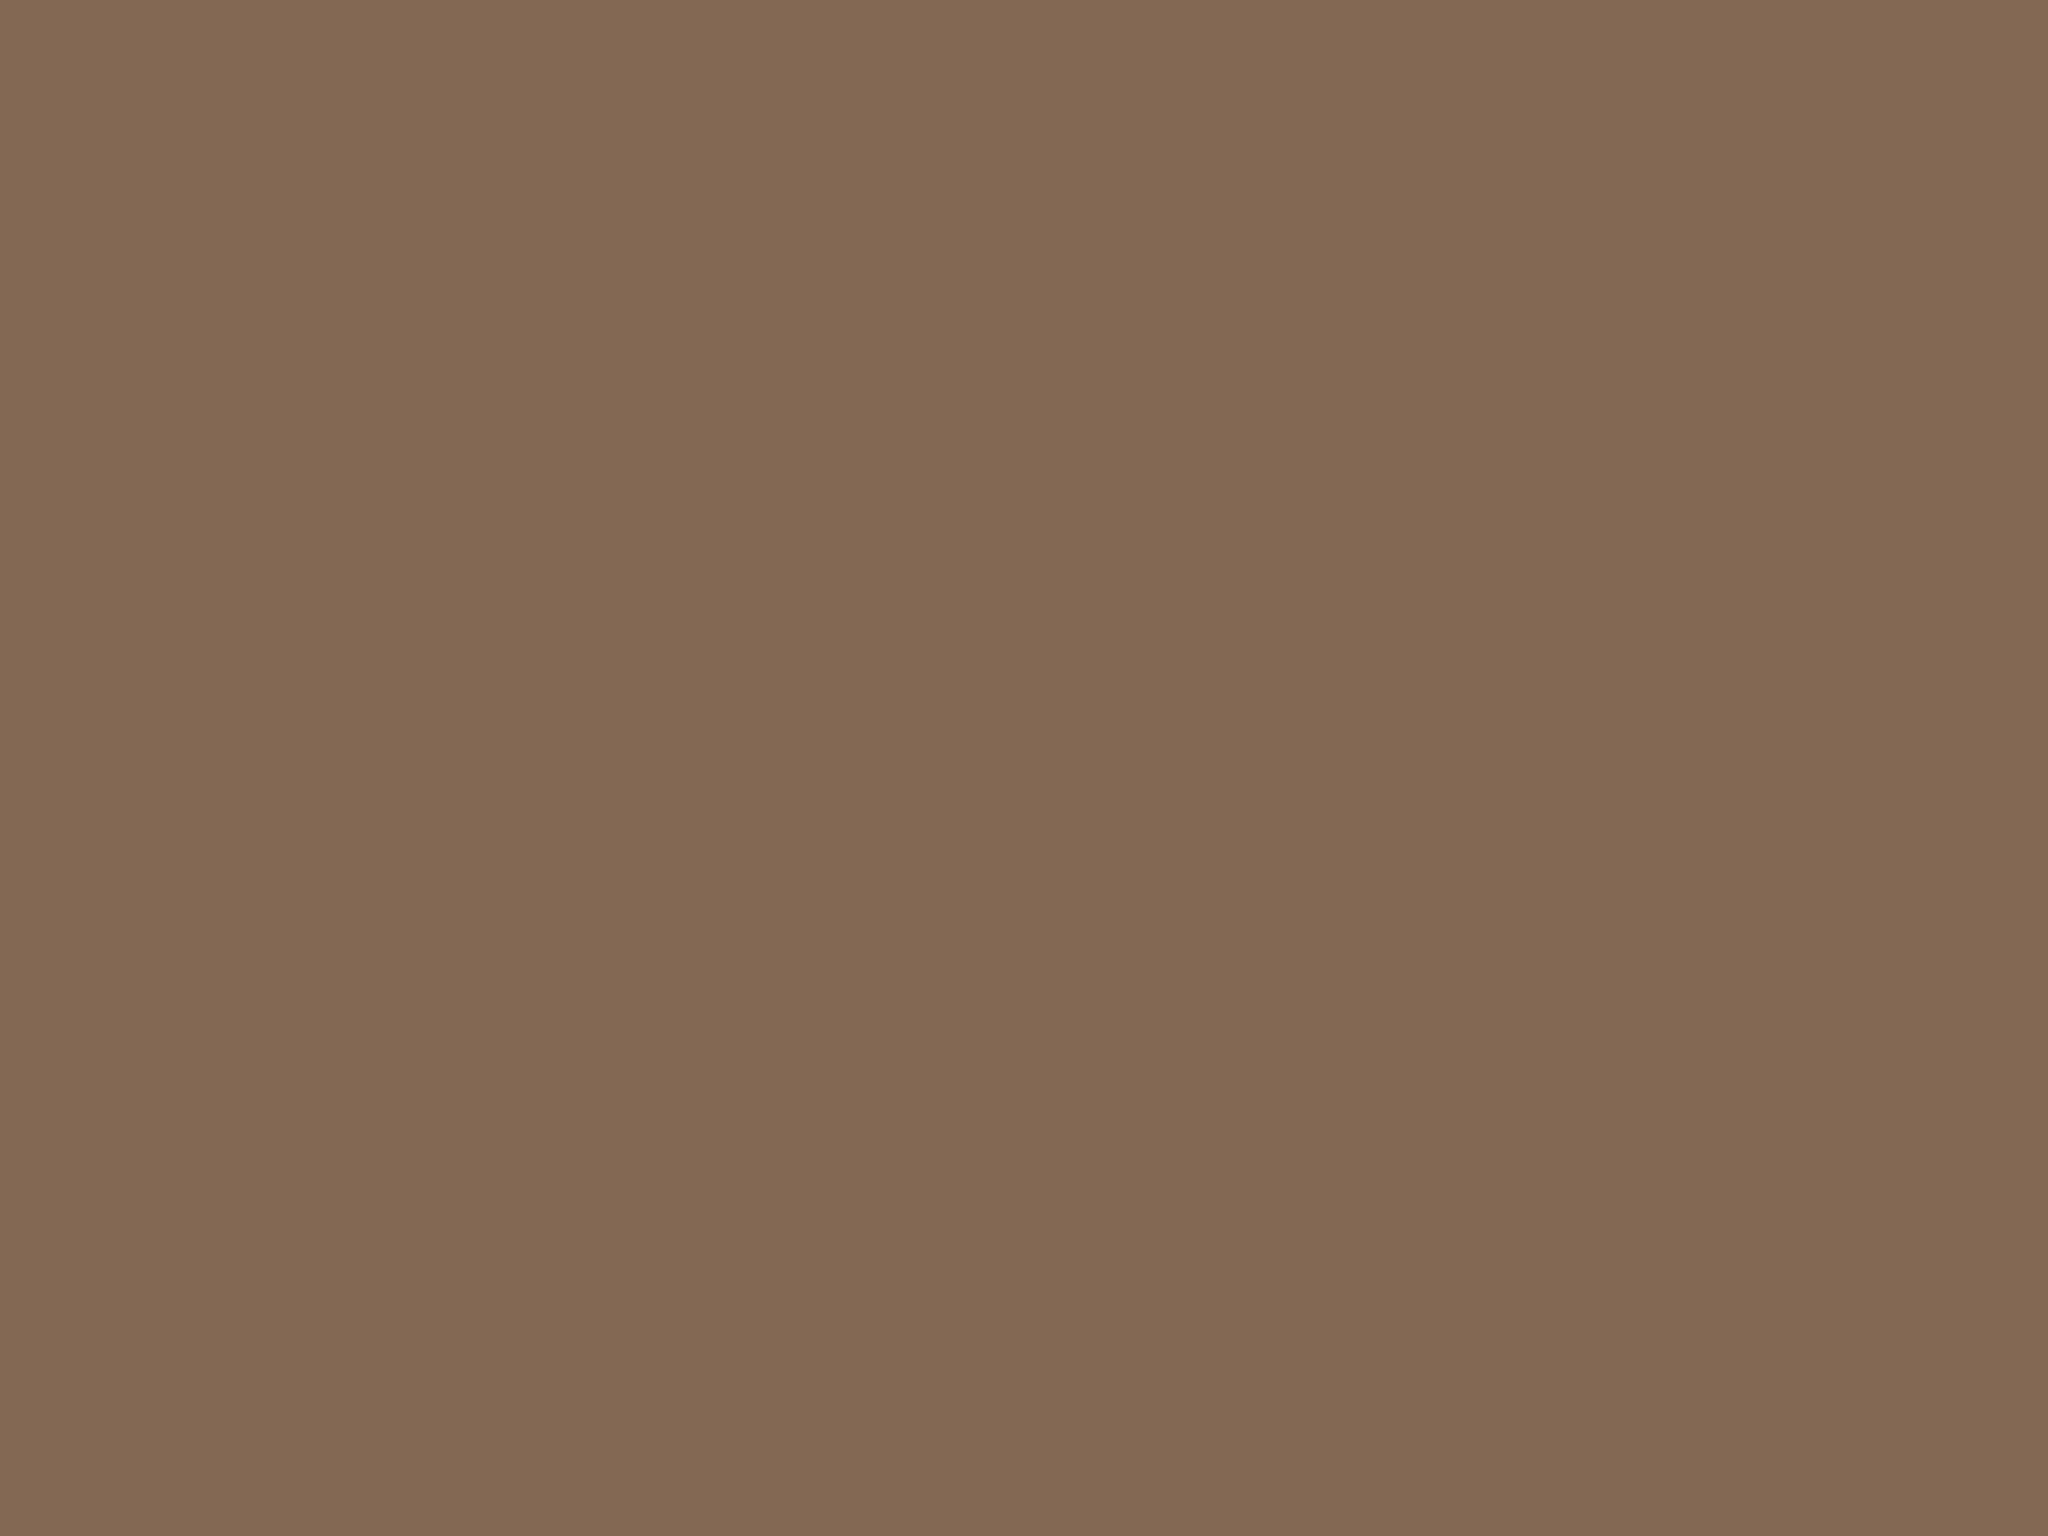 2048x1536 Pastel Brown Solid Color Background